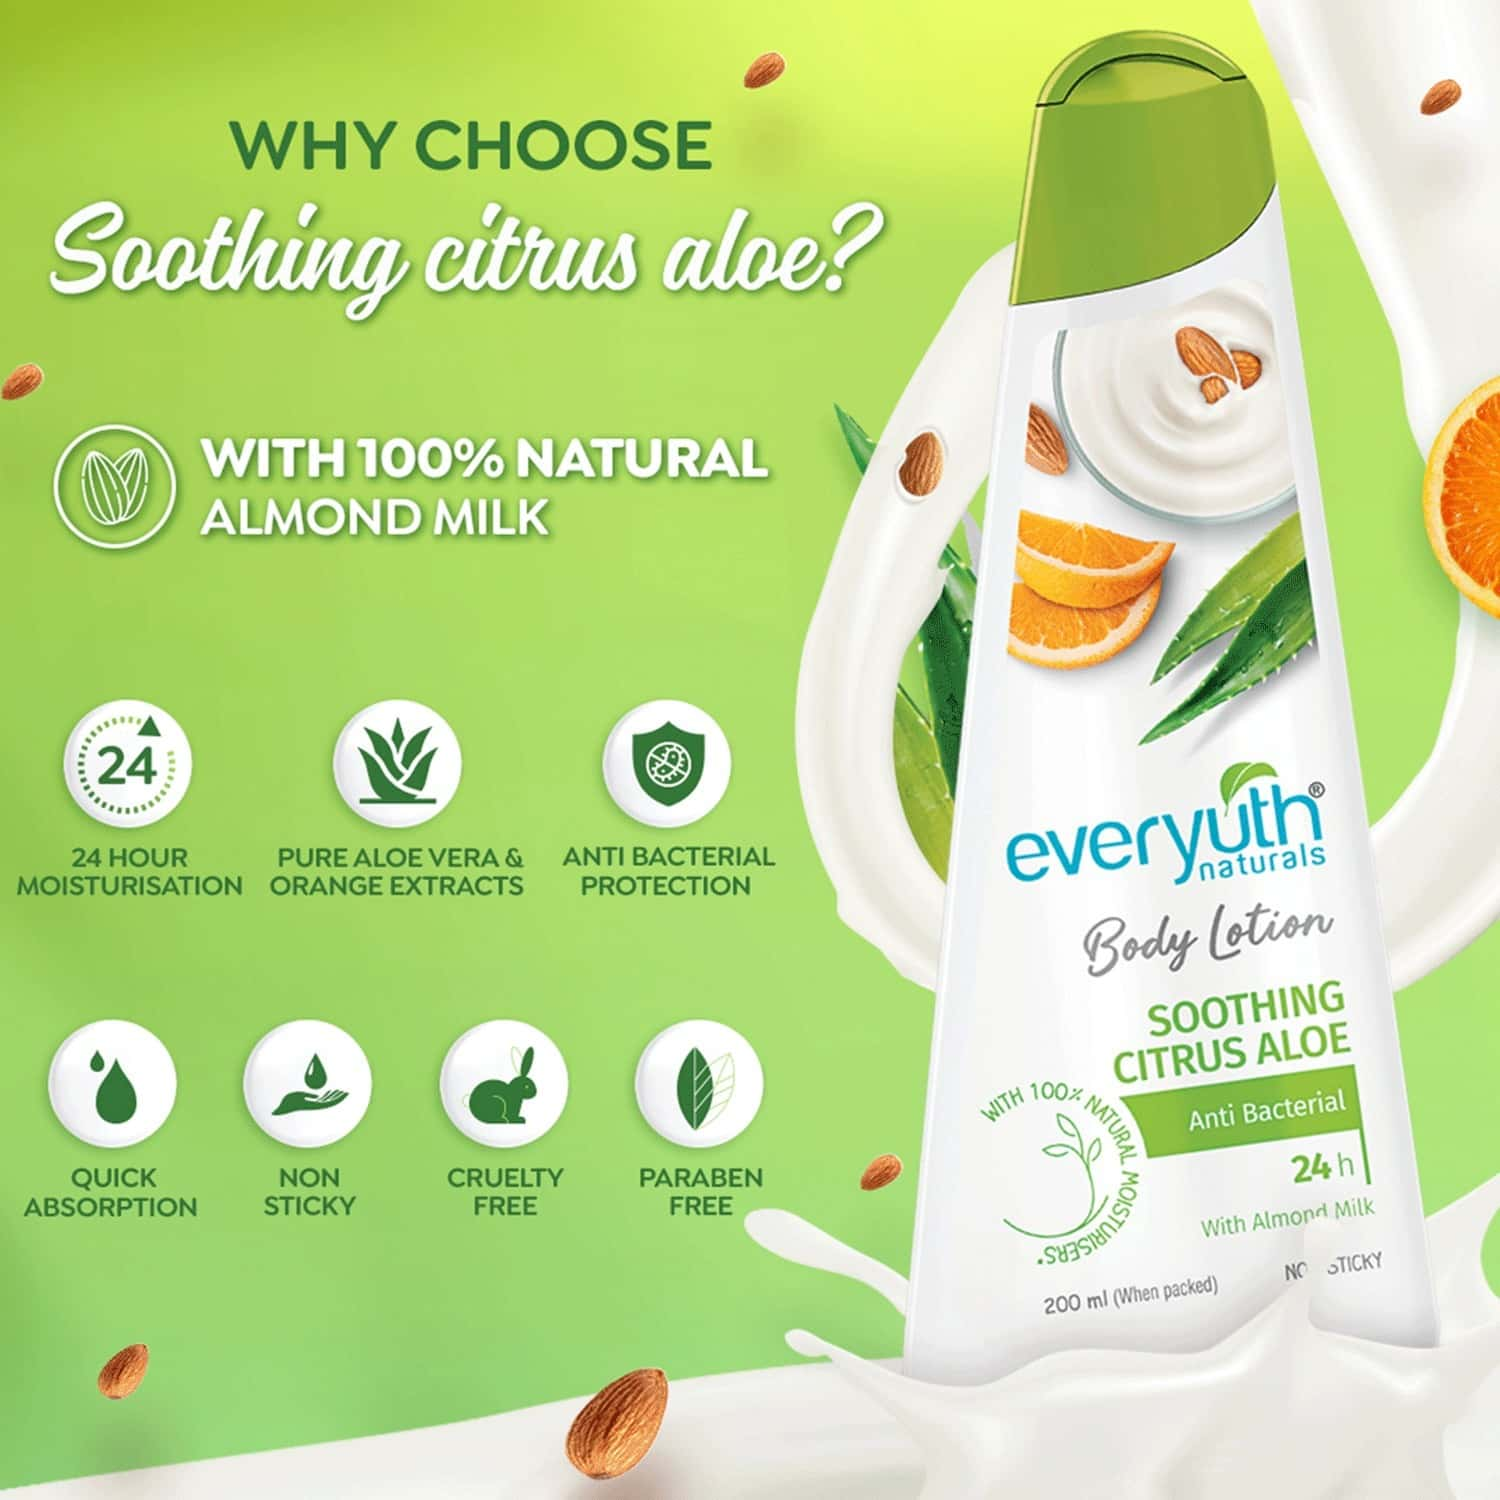 Everyuth Naturals Body Lotion Soothing Citrus Aloe 200ml